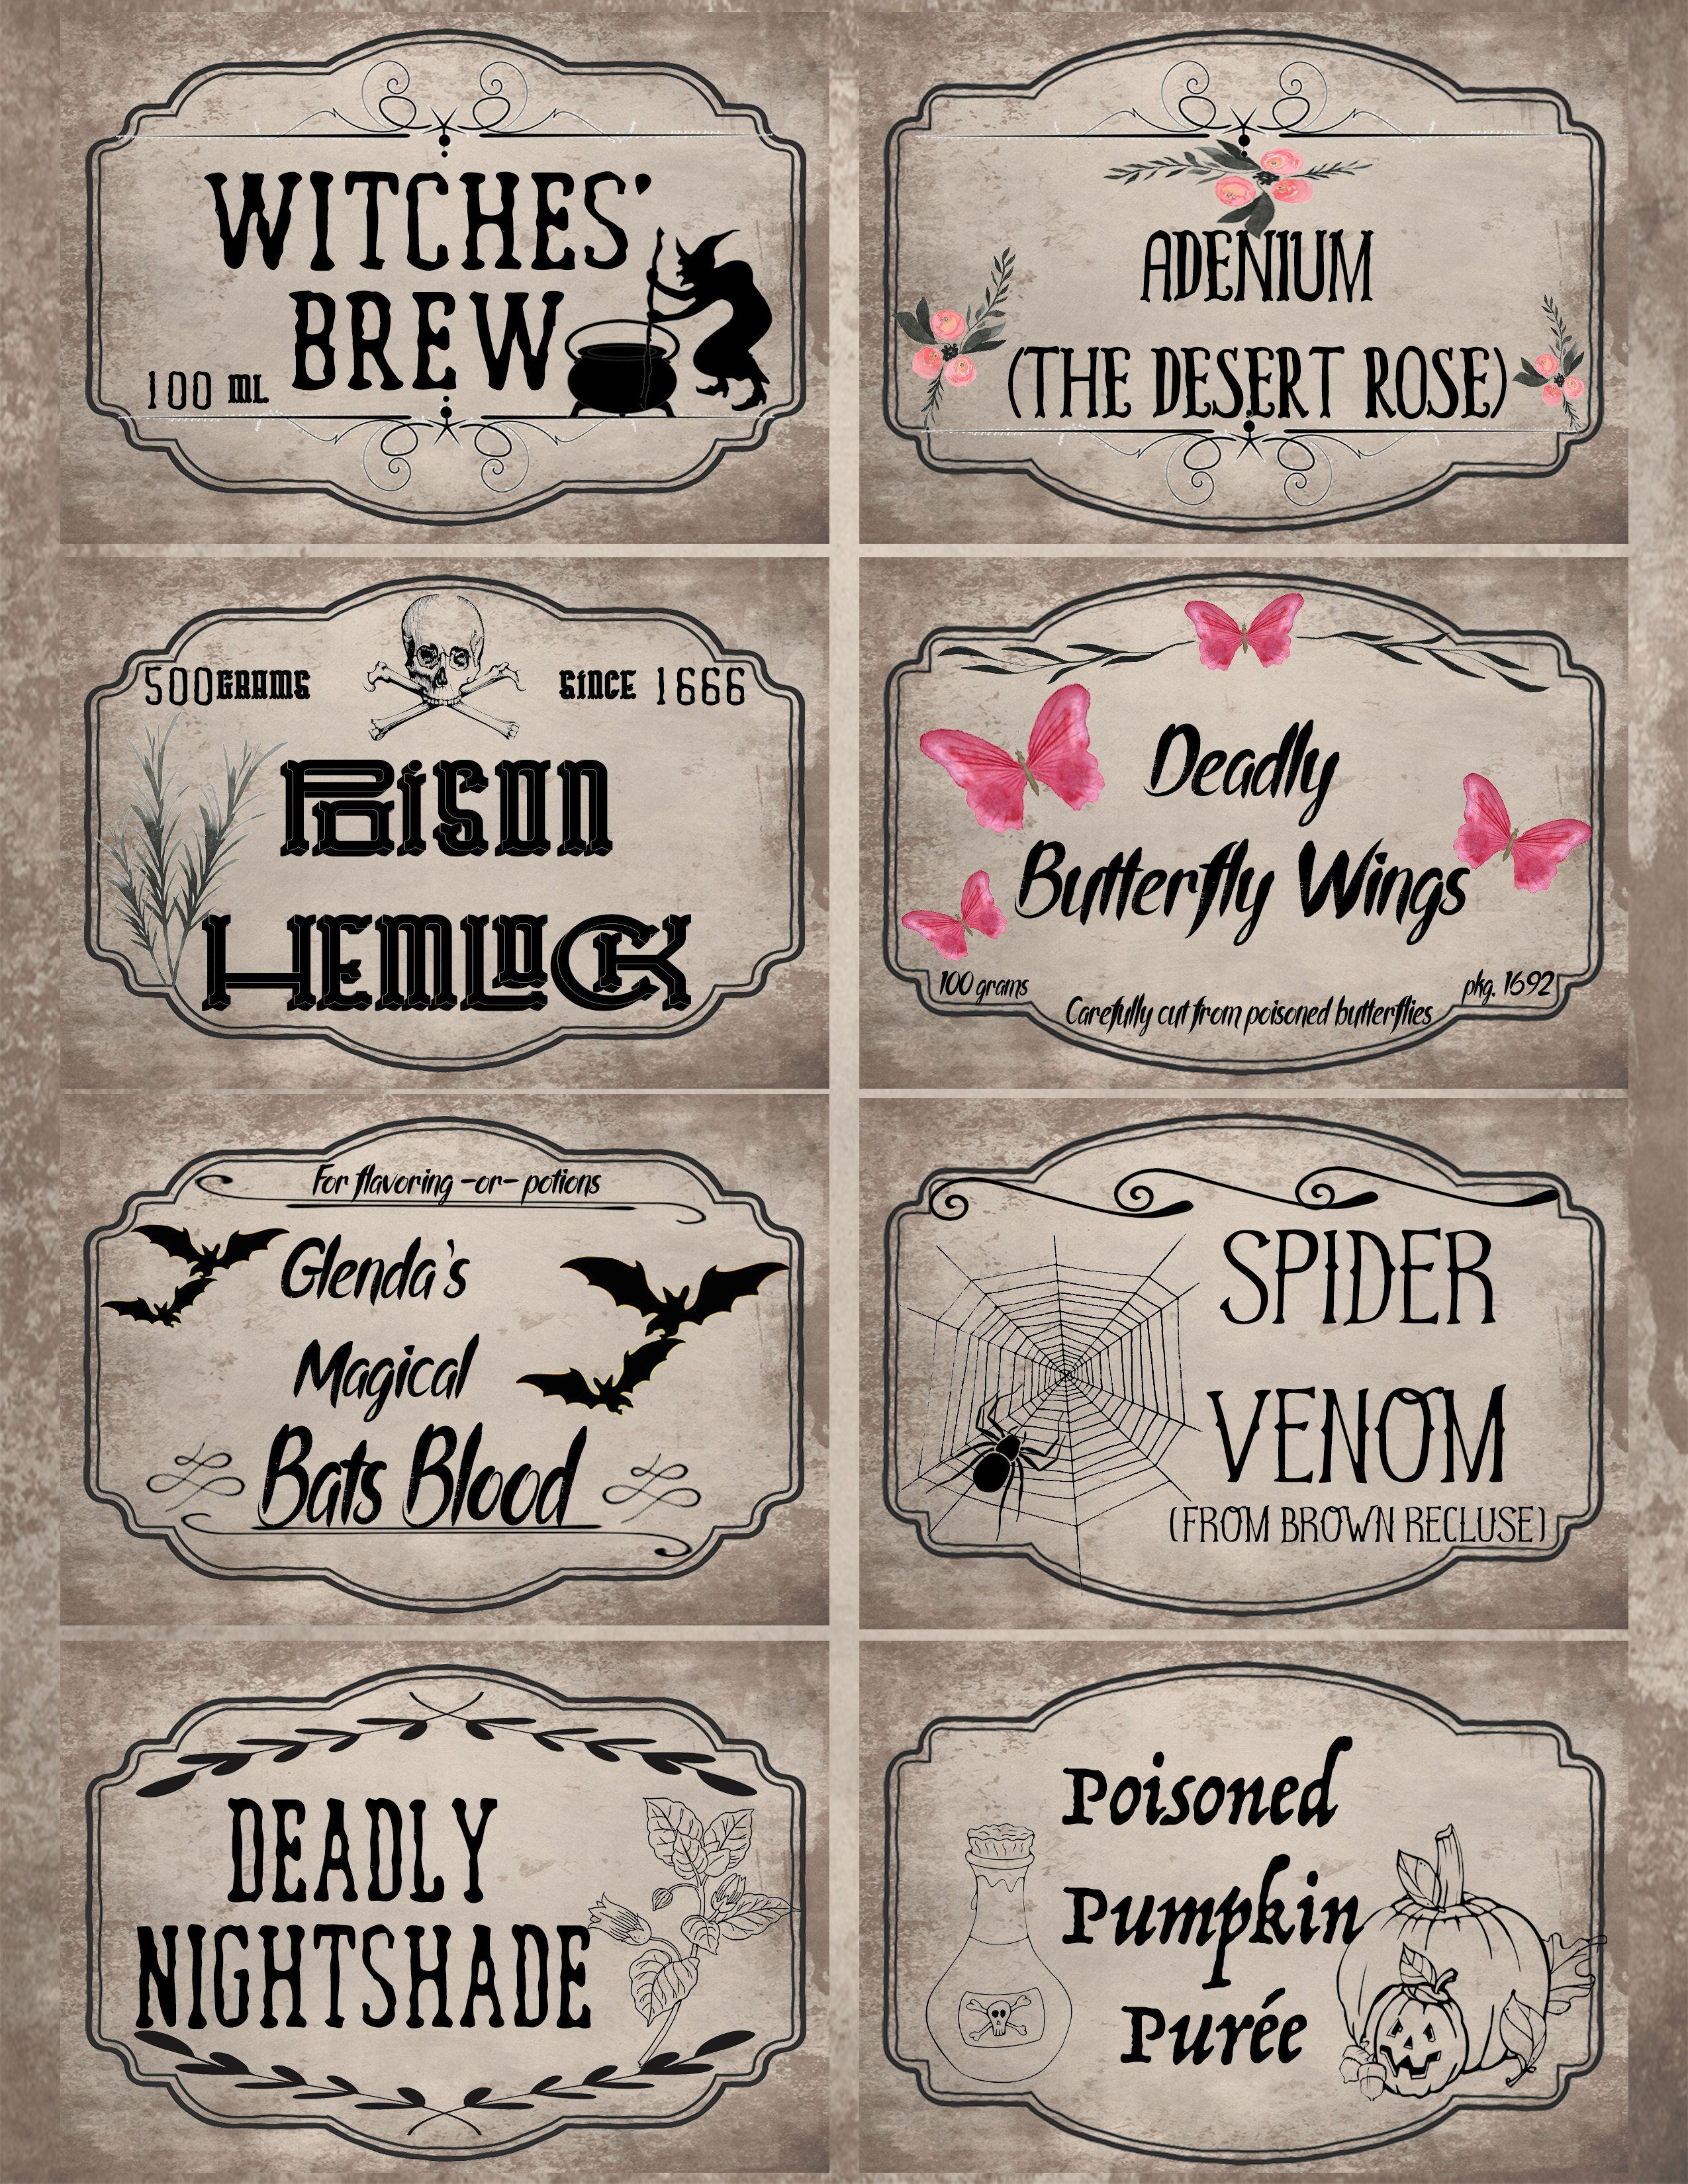 photo regarding Free Printable Halloween Poison Bottle Labels called Free of charge Printable Halloween Apothecary Labels: 16 Plans additionally